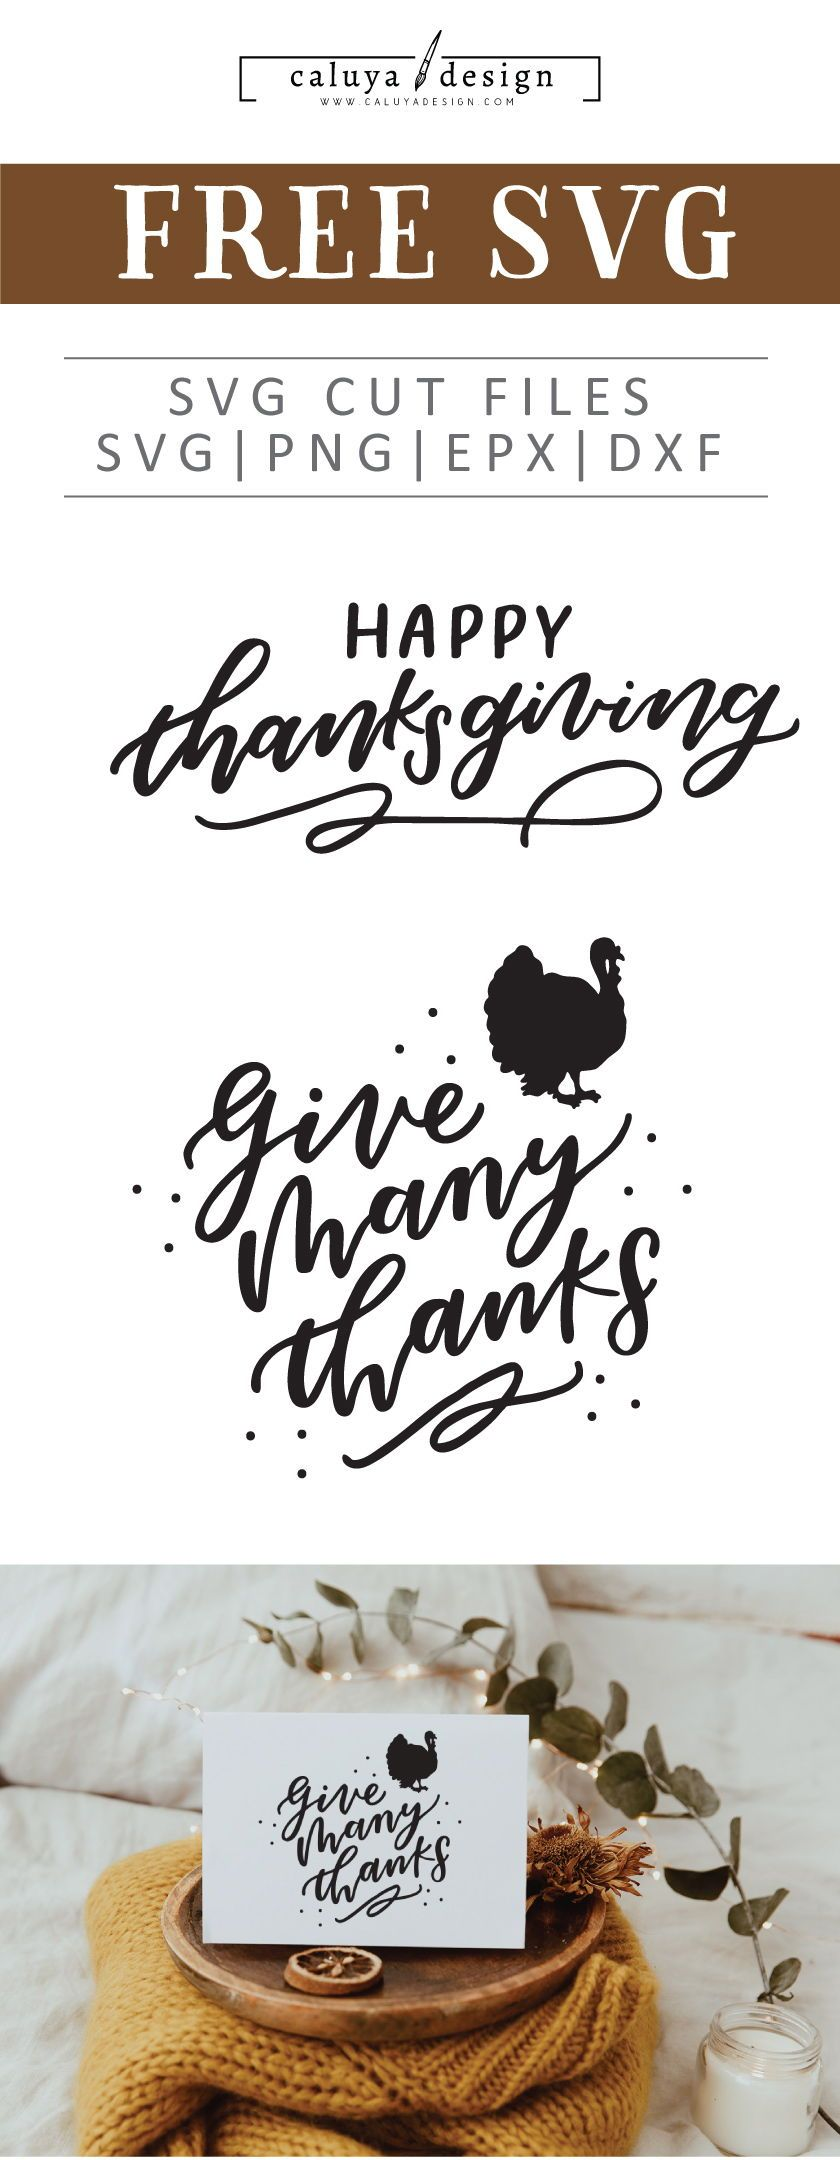 Do It Yourself Home Design: Free Thanksgiving Lettering SVG, PNG, EPS & DXF By